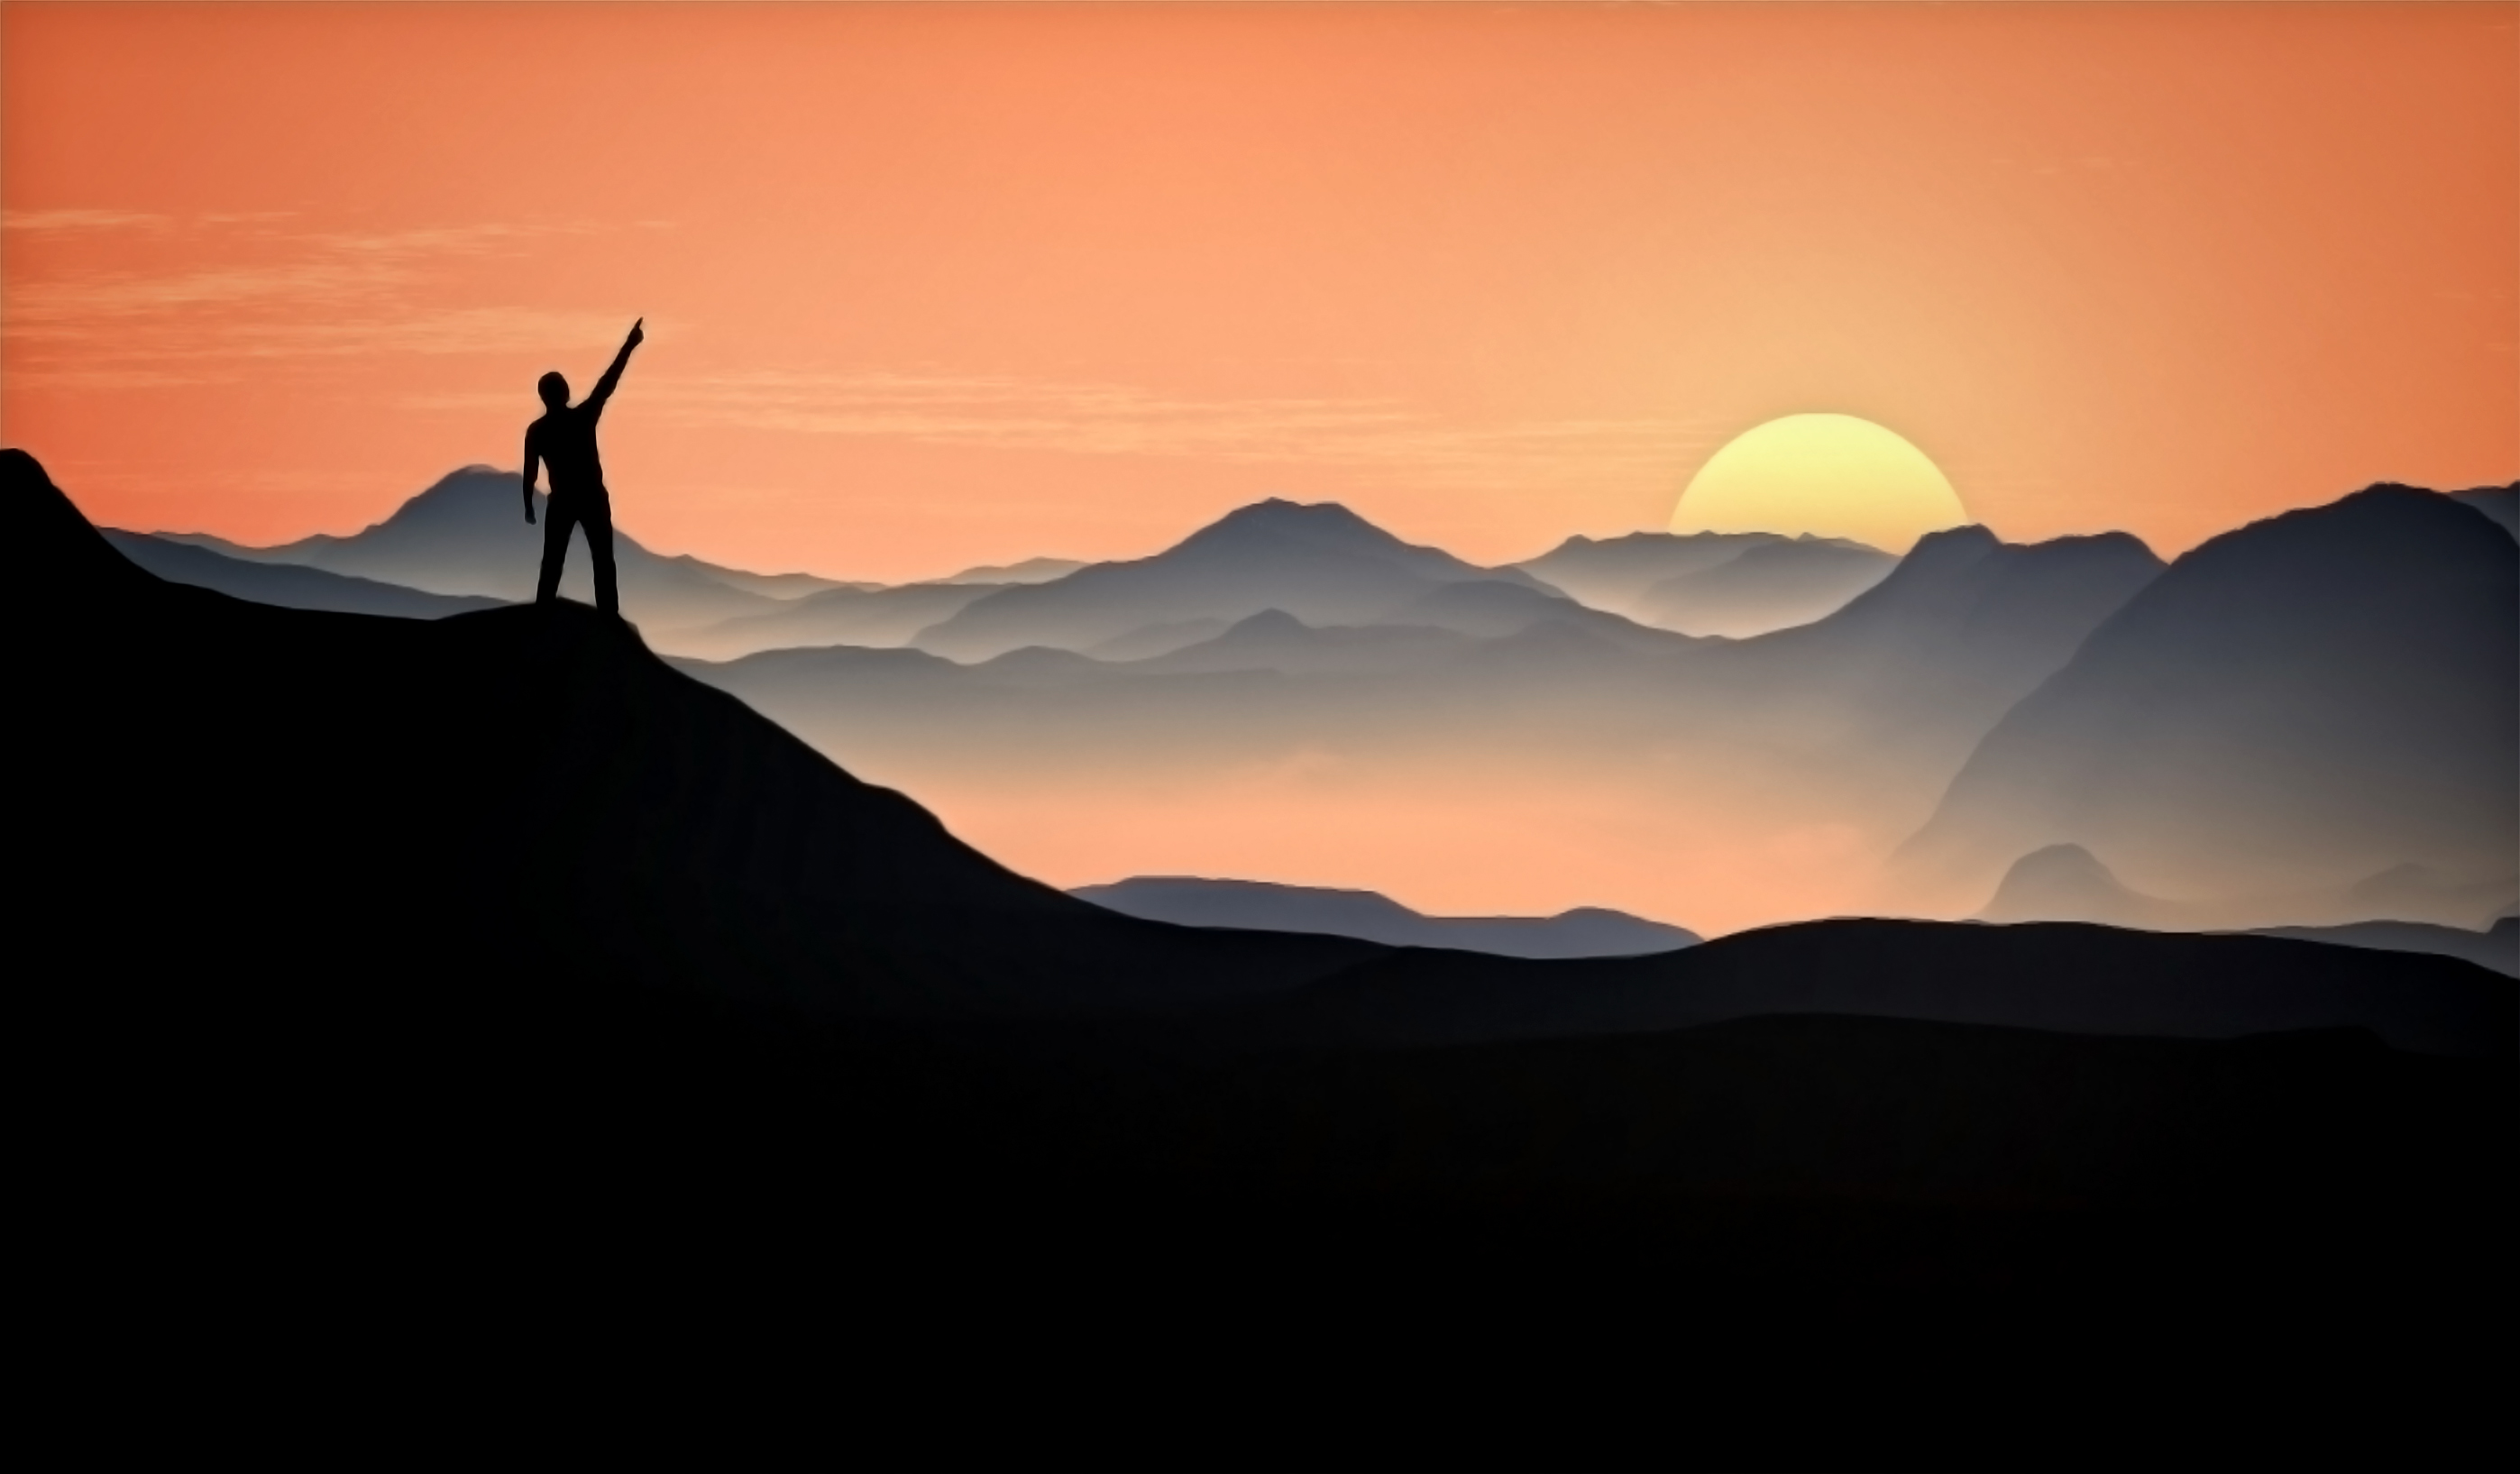 Man Raising Arm at the Top of the Mountain, Achievement, Sky, Rucksack, Rock, HQ Photo